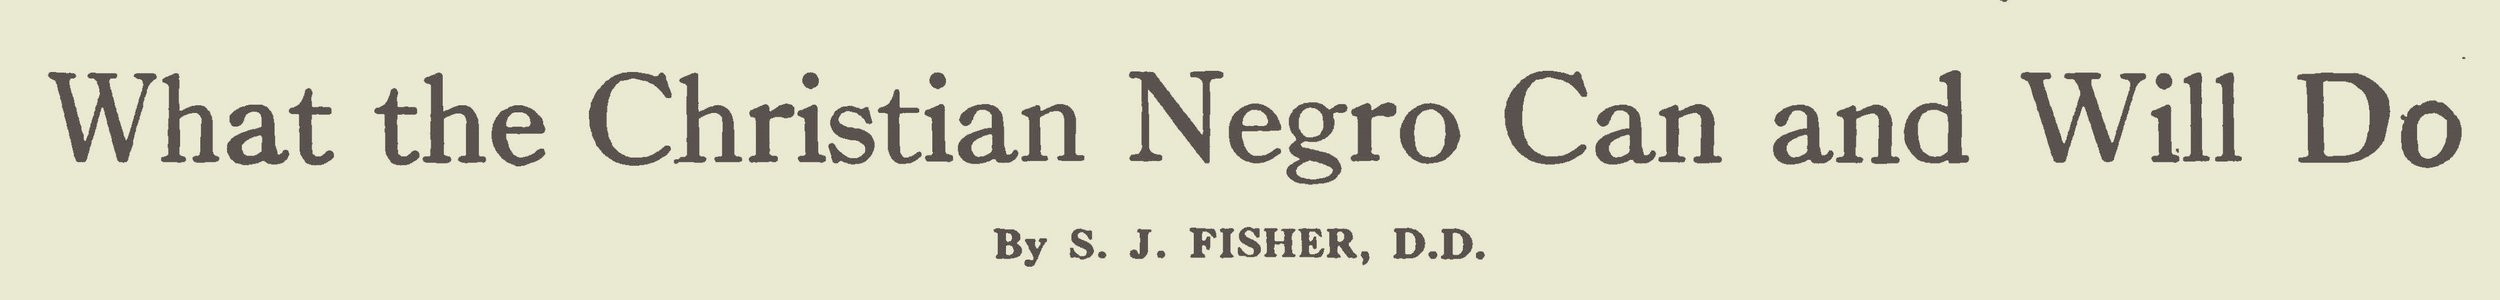 Fisher, Samuel Jackson, What the Christian Negro Can and Will Do Title Page.jpg